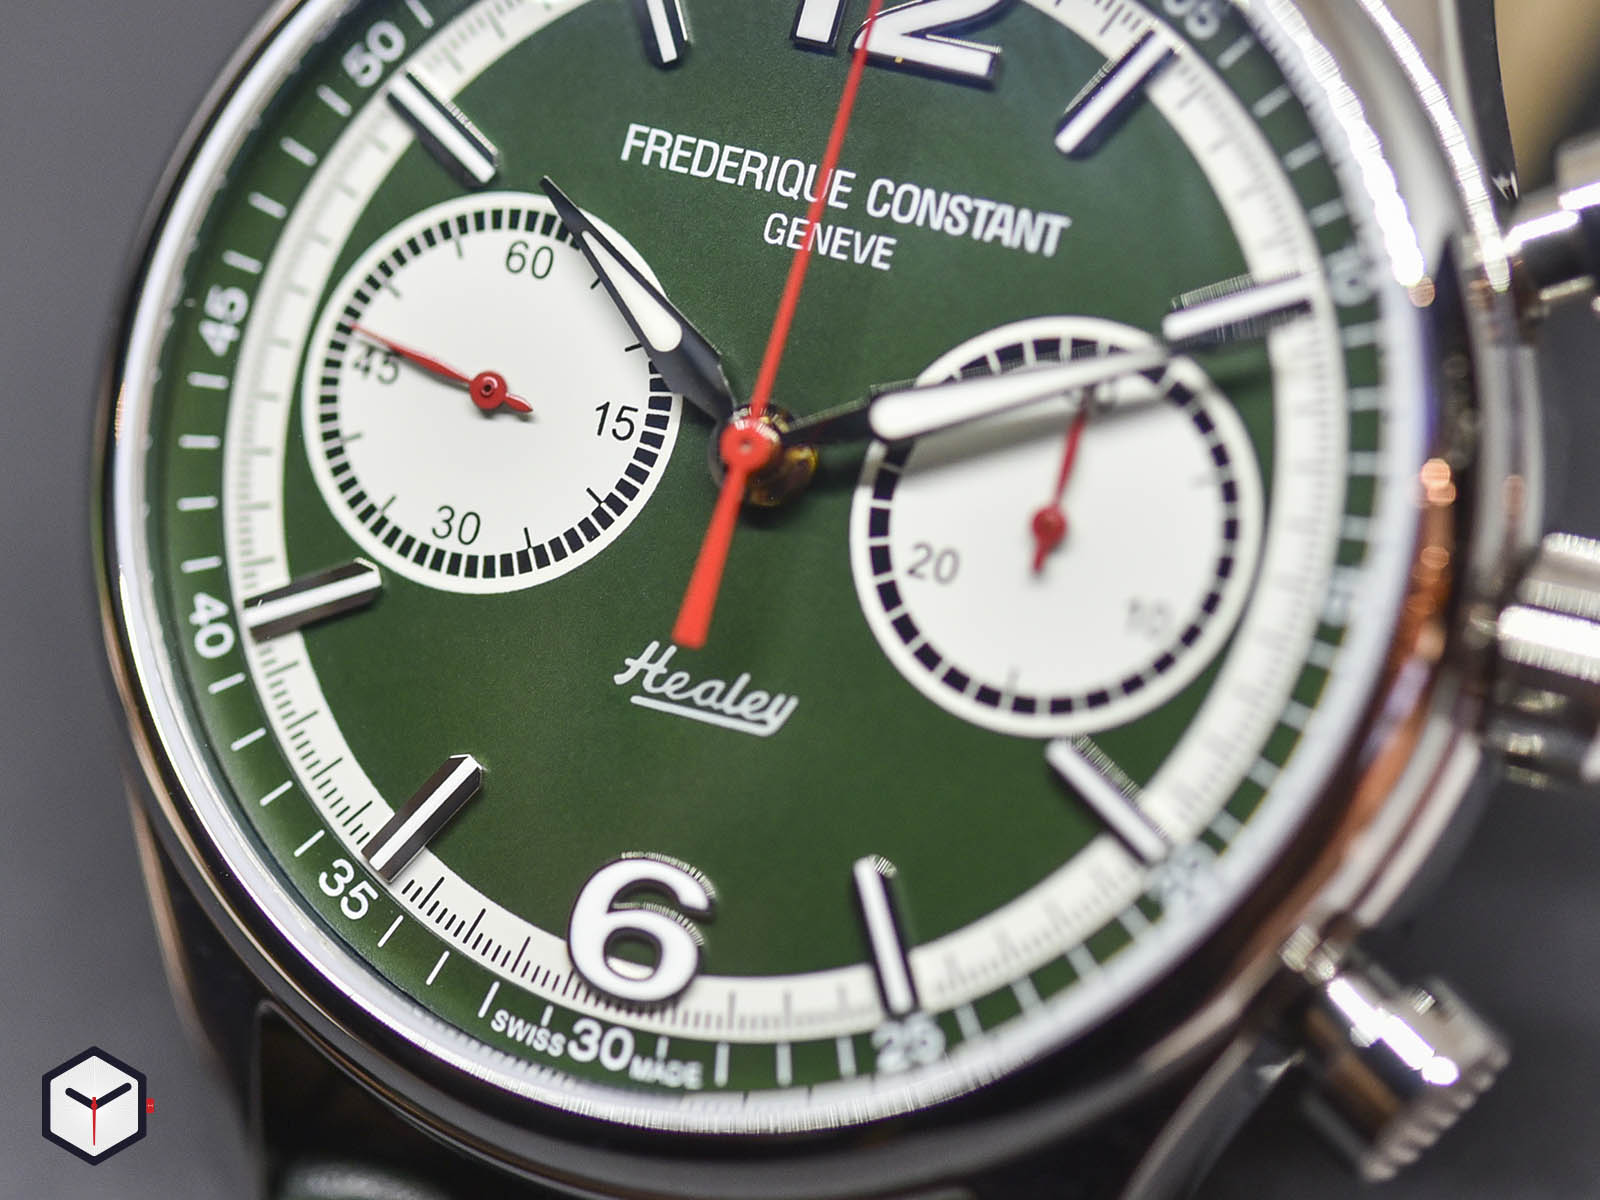 fc-397hgr5b6-frederique-constant-vintage-rally-healey-chronograph-2.jpg